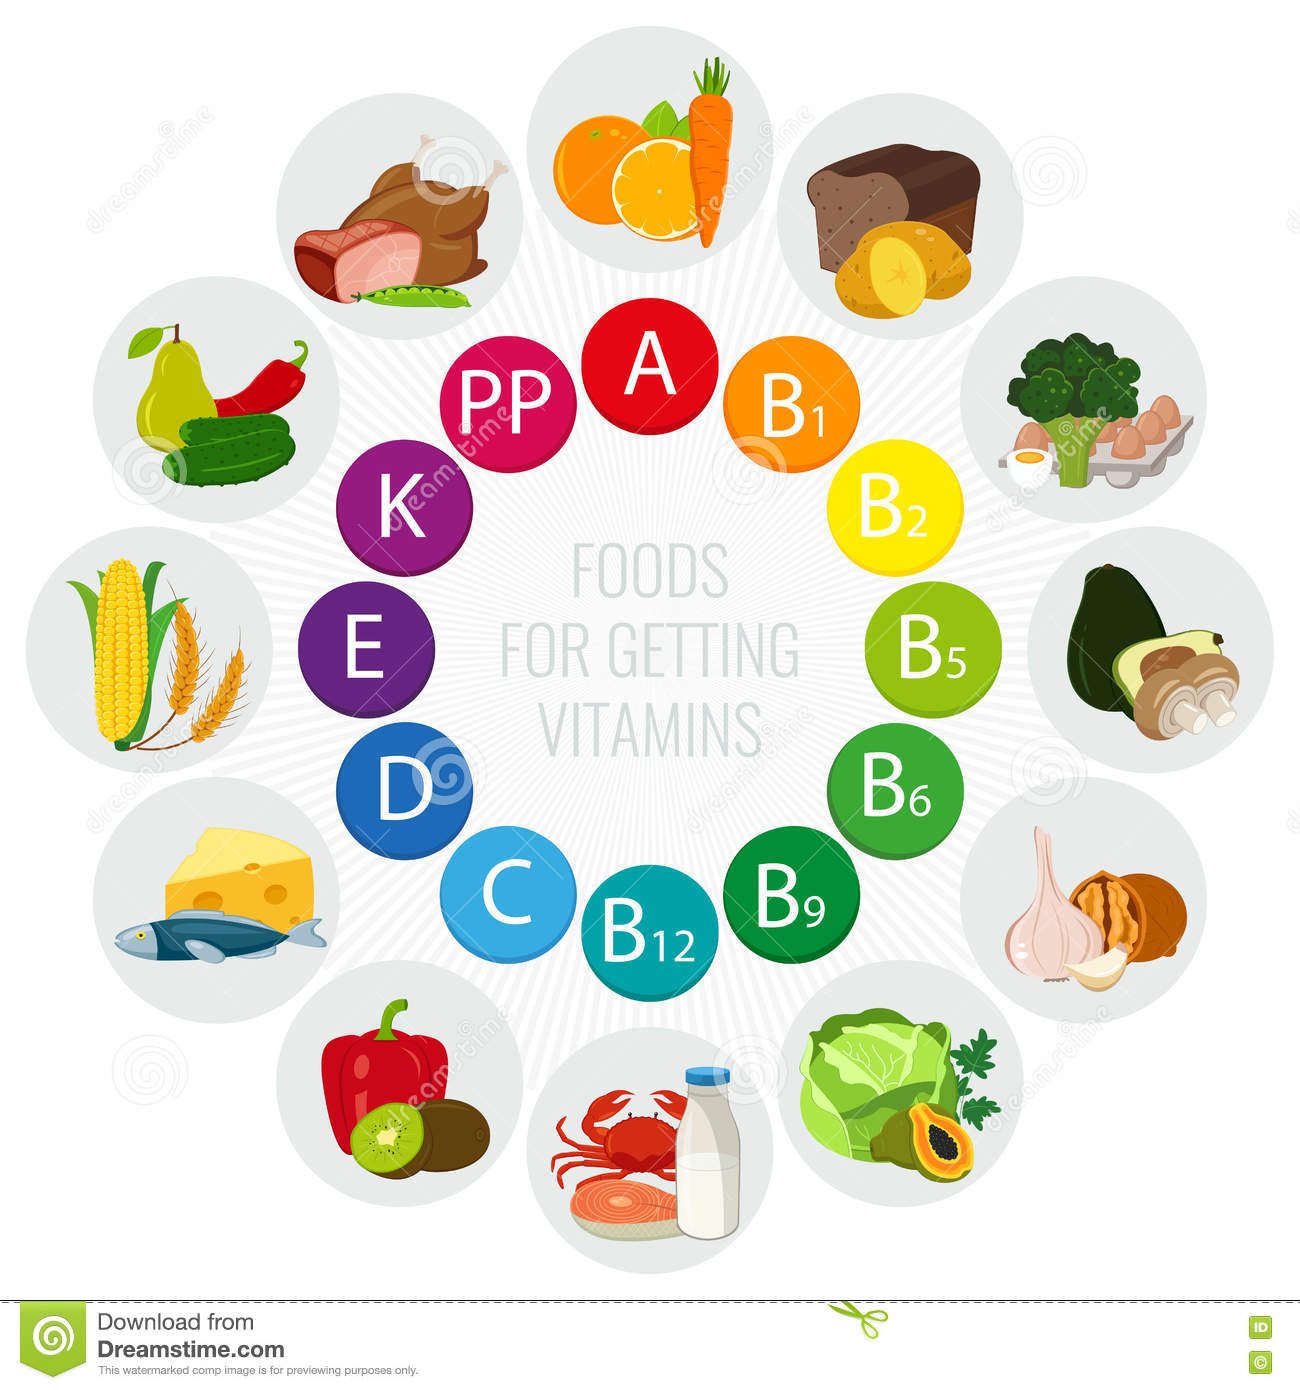 Vitamin Food Sources  Colorful Wheel Chart With Food Icons  Healthy